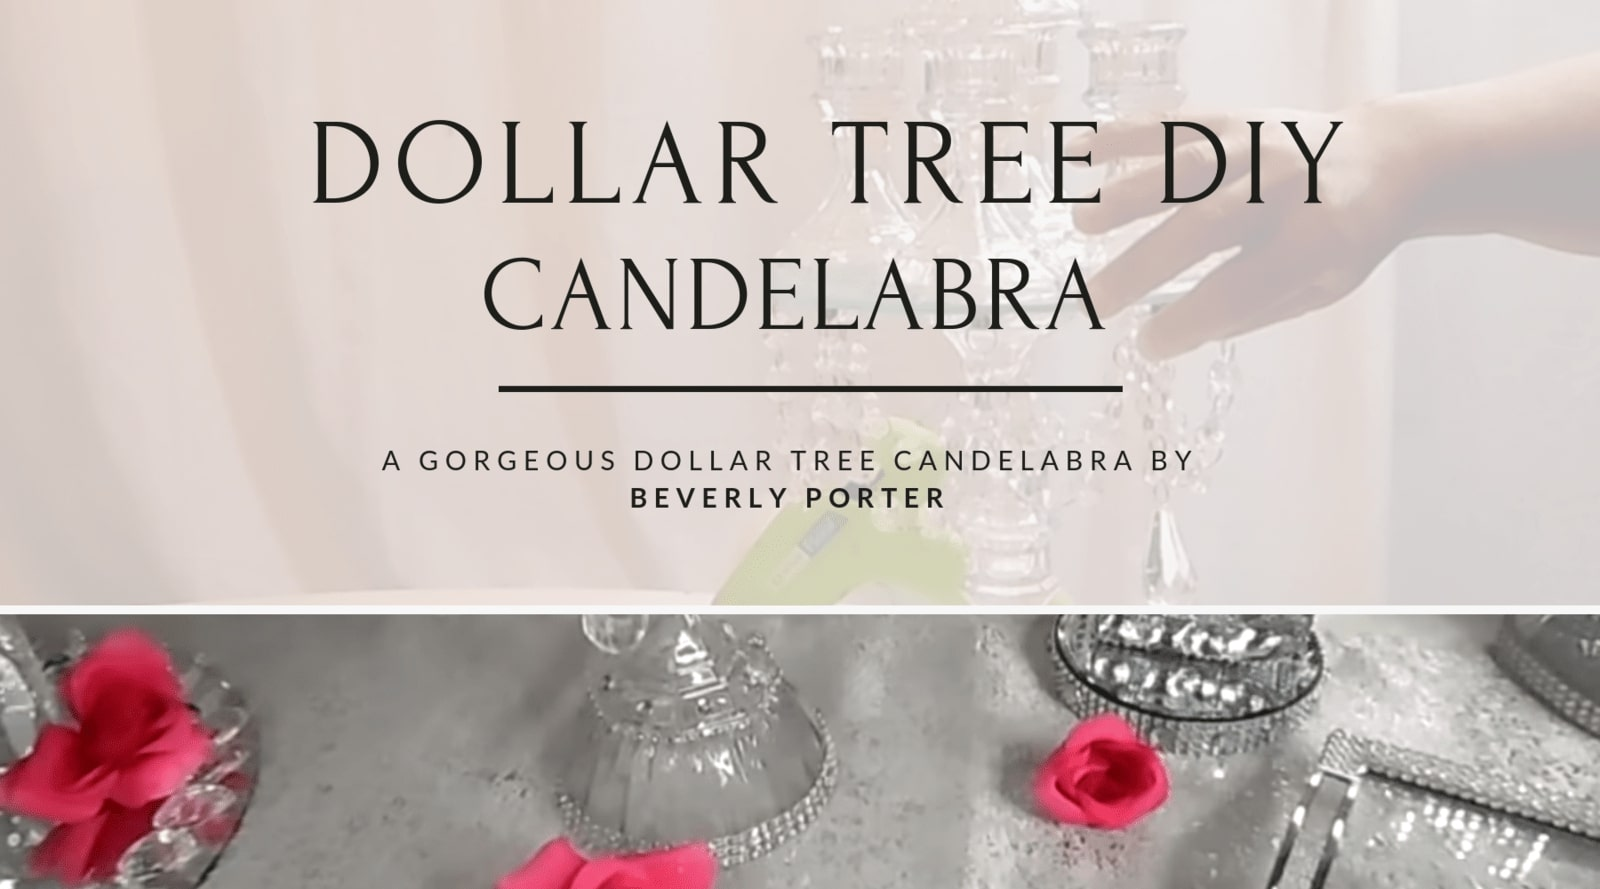 Dollar Tree DIY Candelabra by Beverly Porter